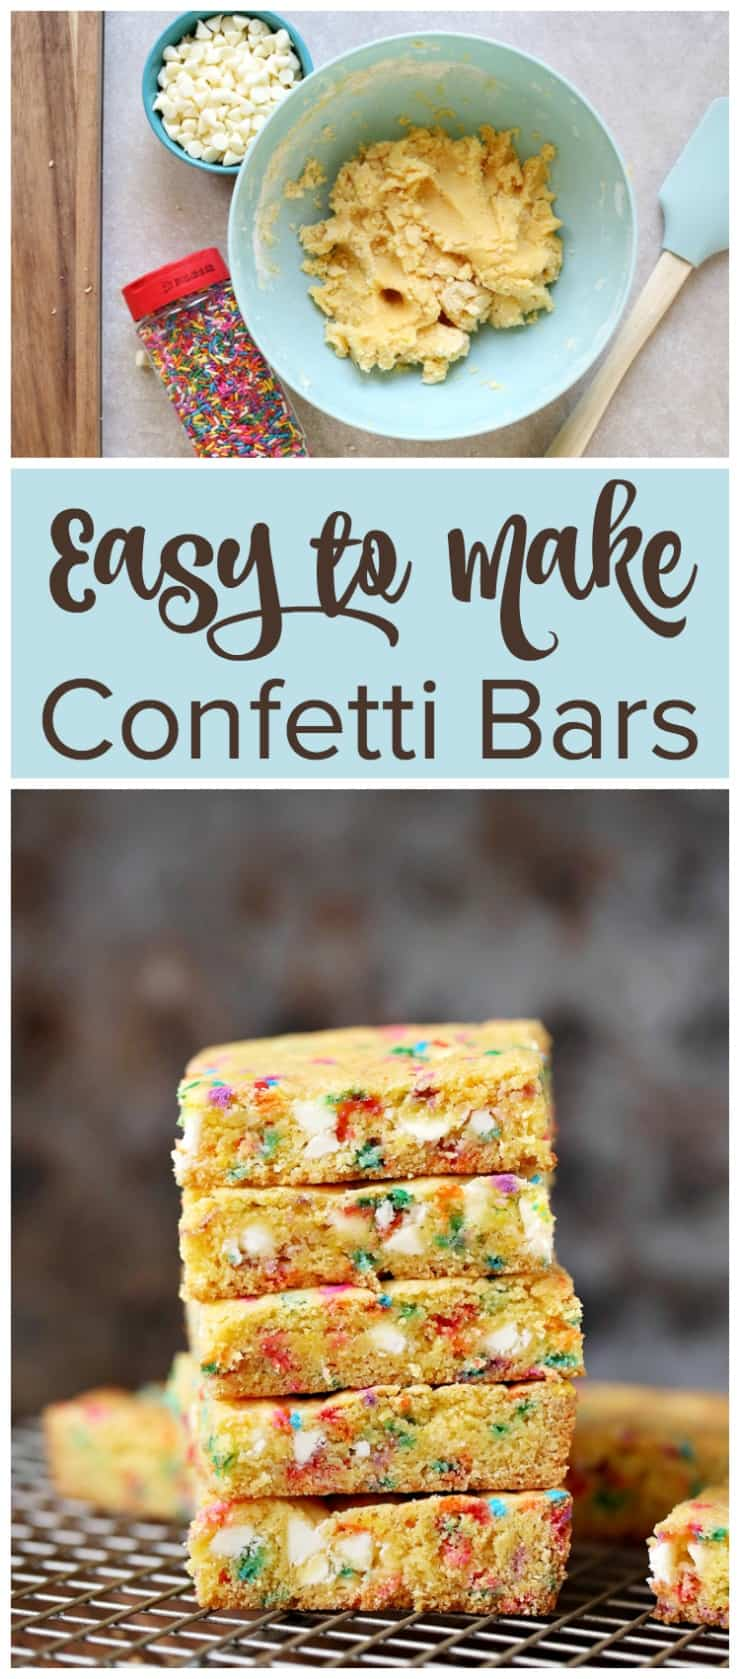 Easy to Make Confetti Bars Recipe